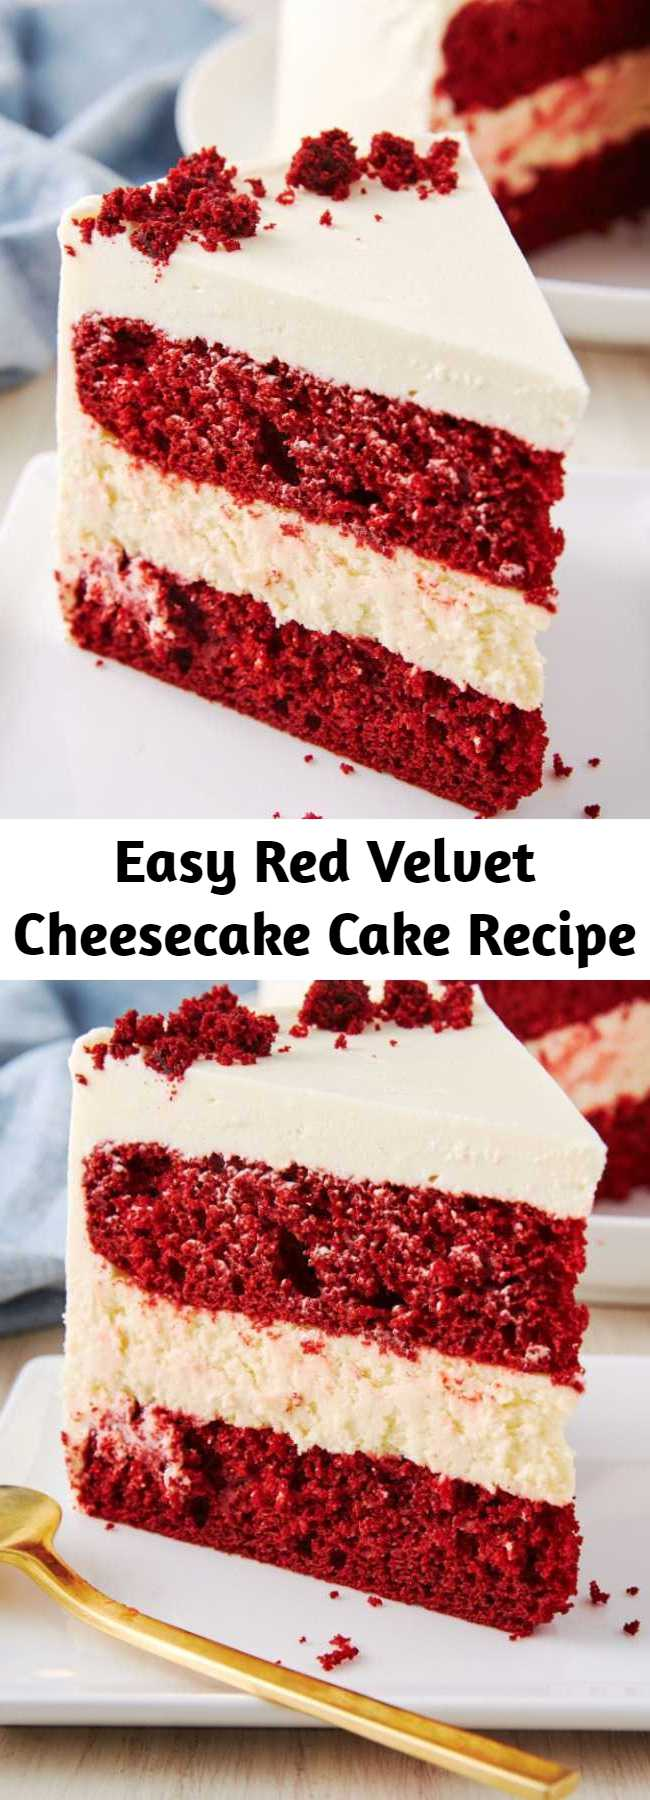 Easy Red Velvet Cheesecake Cake Recipe - Nothing screams Christmas dessert like red velvet cake. We made it even crazier by layering two cakes between a thick layer of plain cheesecake. #easy #recipe #redvelvet #cheesecake #cake #baking #desserts #holidays #christmas #menuideas #creamcheese #frosting